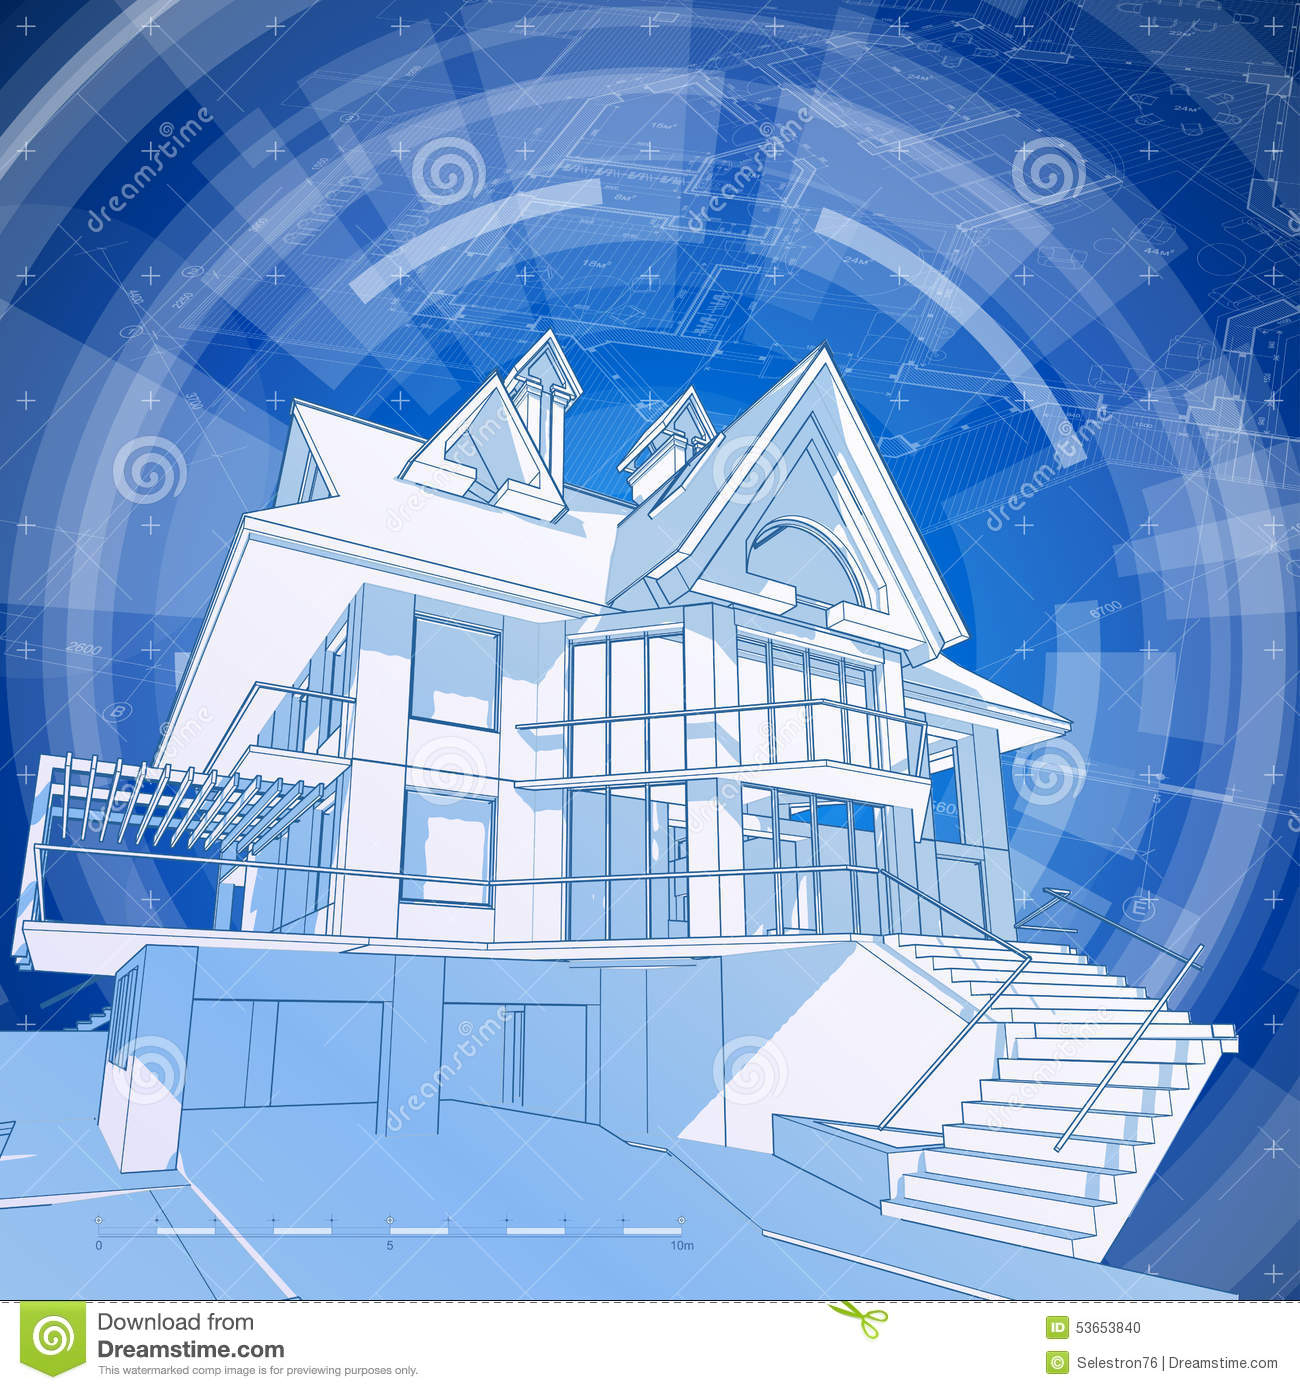 Architecture design blueprint 3d house stock vector for Architecture design blueprint